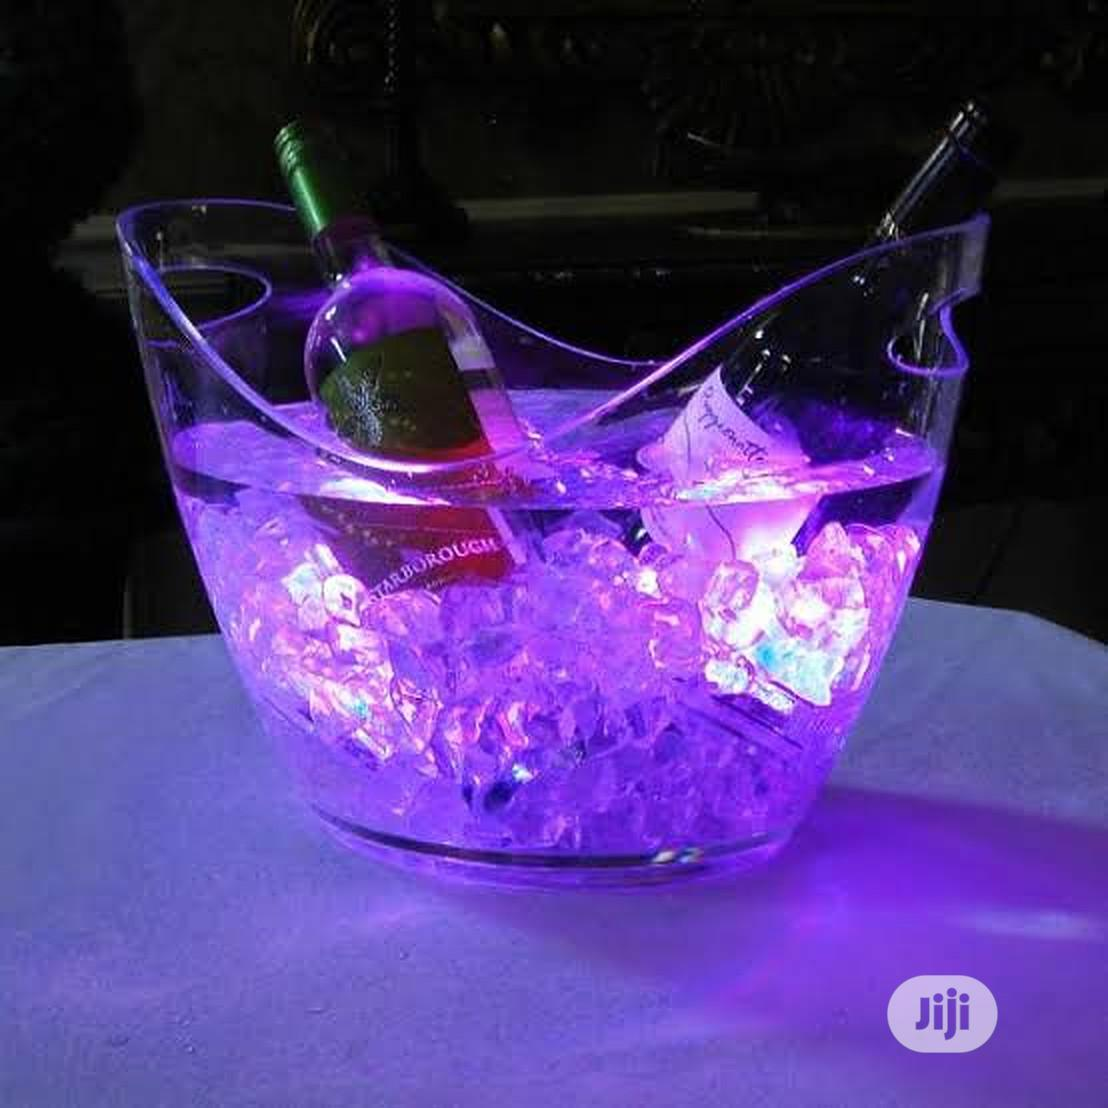 Champagne Led Light Bucket   Kitchen & Dining for sale in Lekki, Lagos State, Nigeria